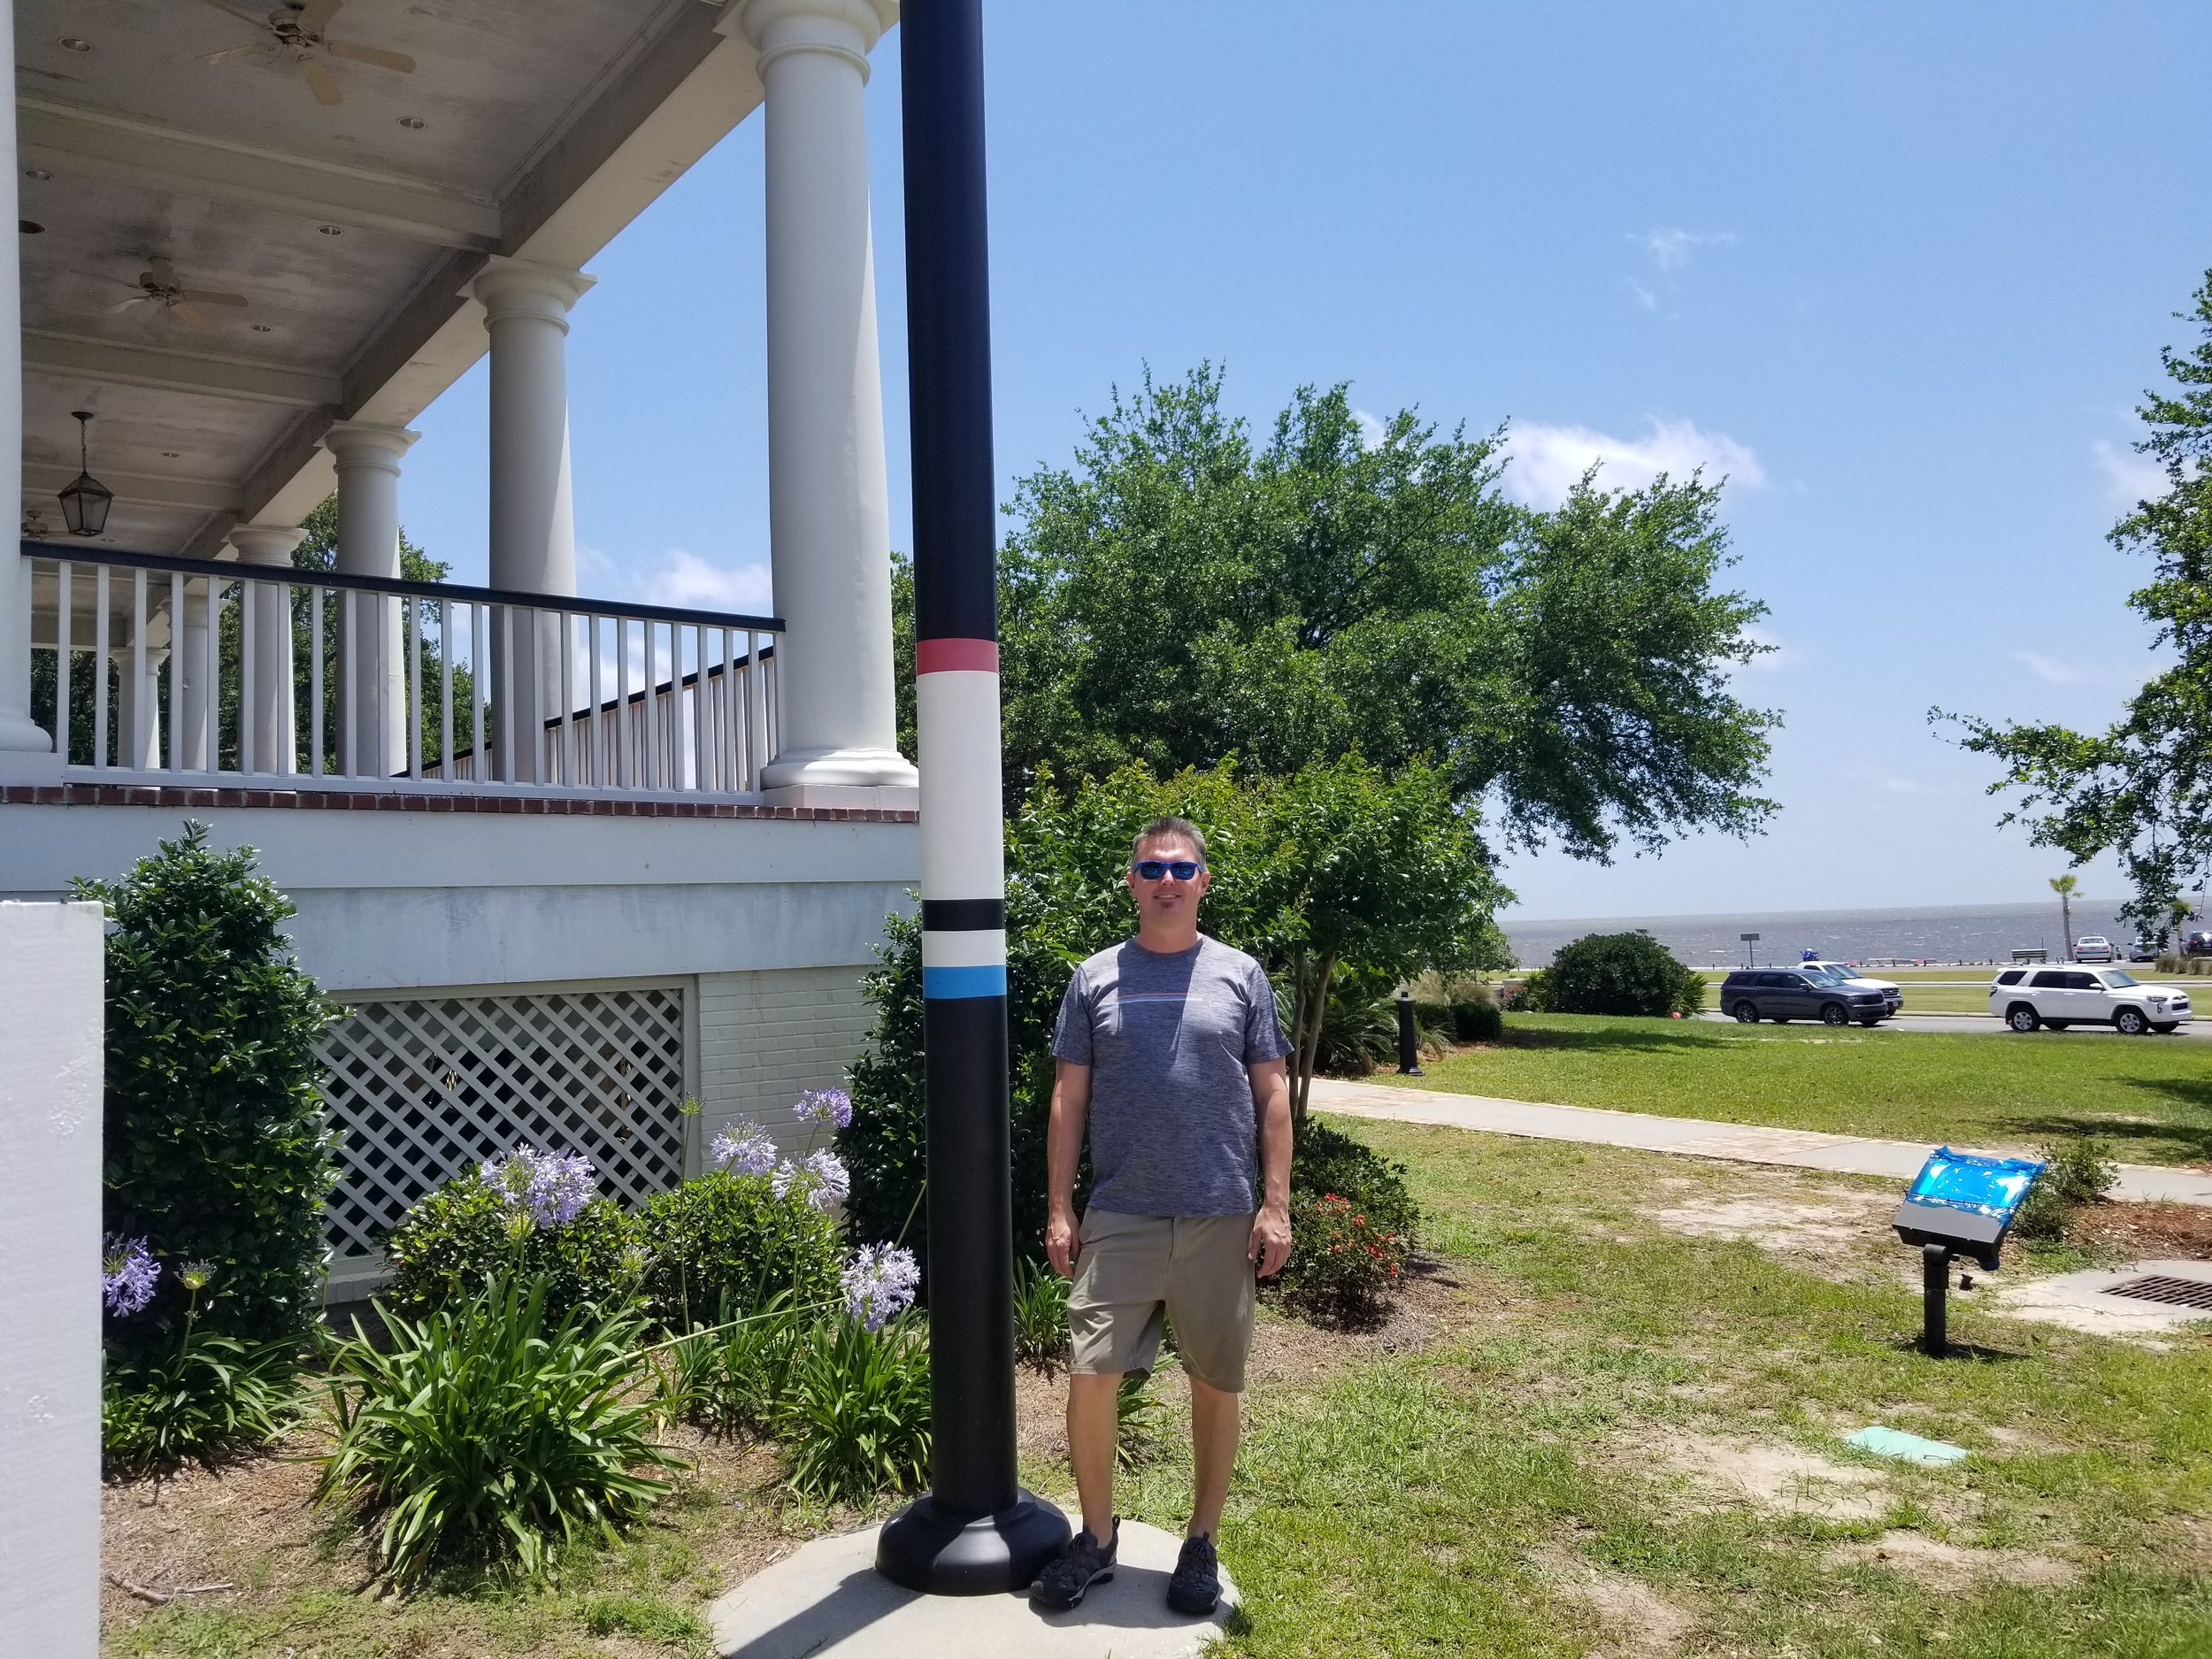 High water marks: Katrina = Red, Camille = Blue and the Base Flood Elevation (20 ft) = Black. During Katrina (2005), the storm surge level at this location was 22 feet above mean sea level and 19.5 feet during Camille (1969)